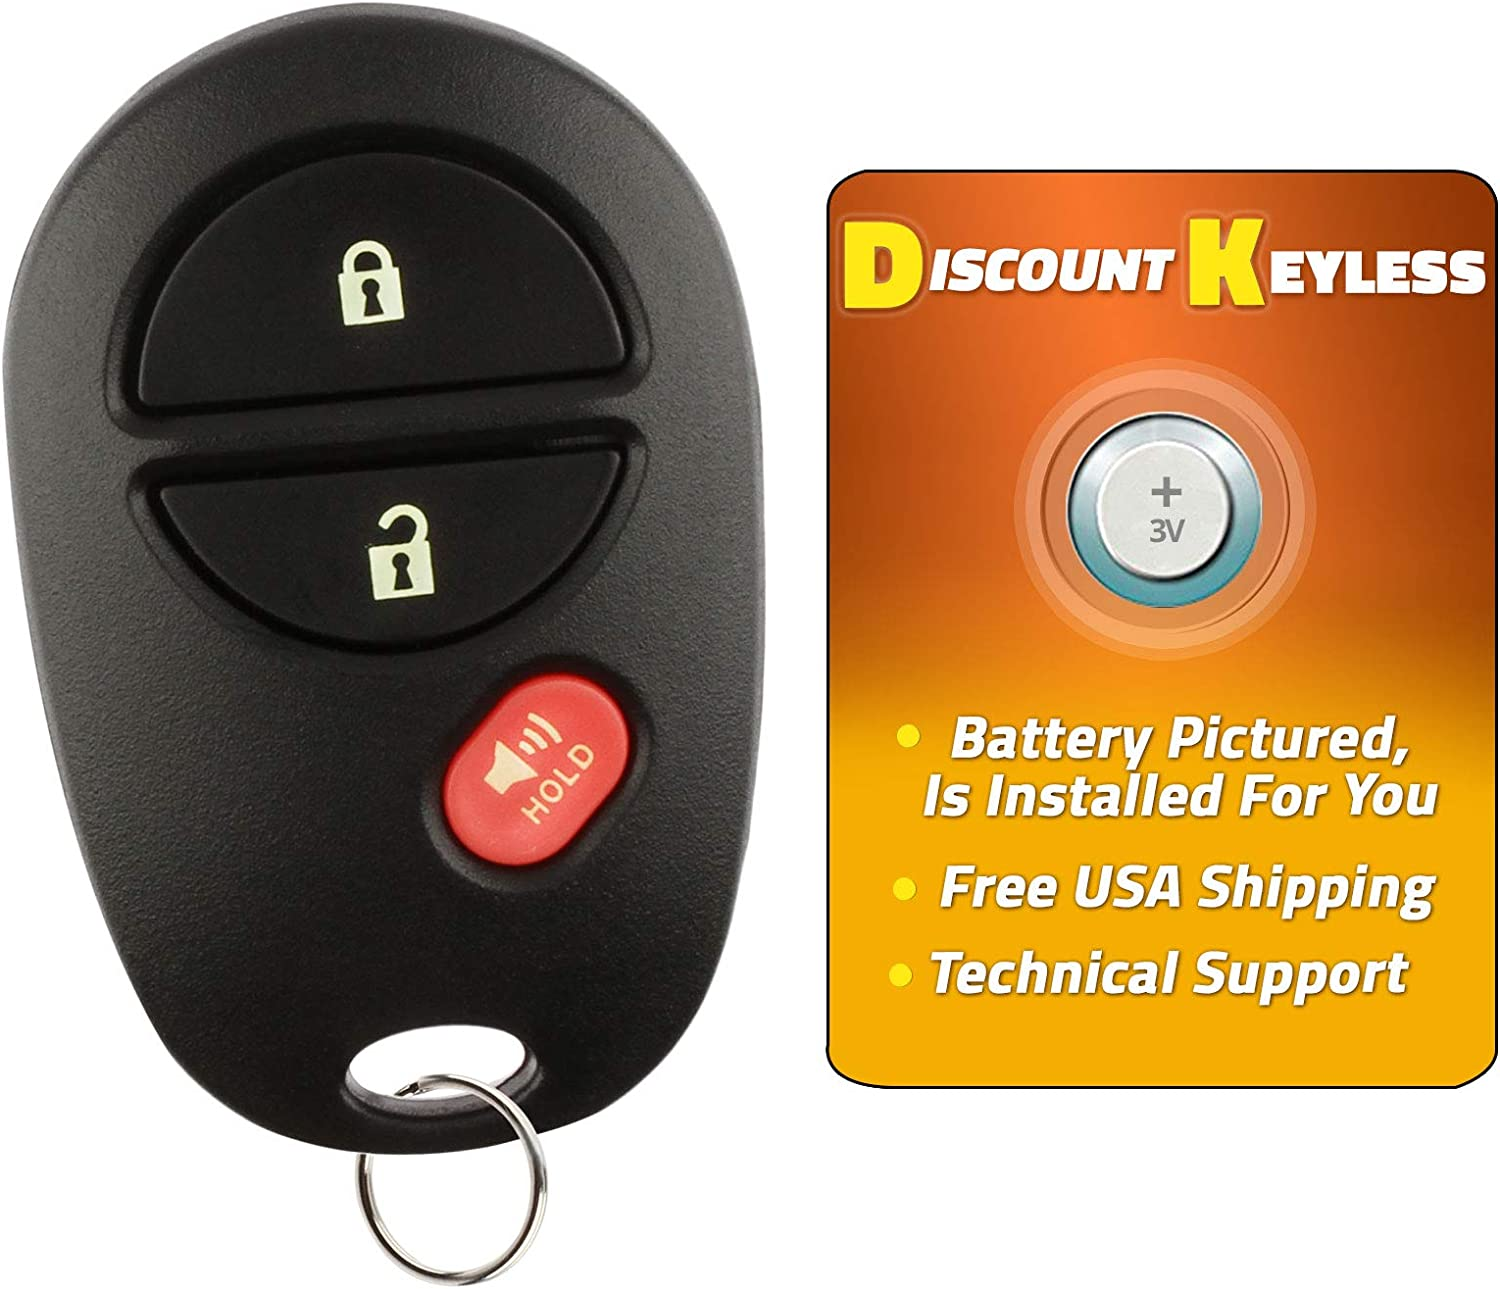 Discount Keyless Replacement Key Fob Car Remote For Toyota Tacoma Tundra Sequoia Highlander GQ43VT20T 2 Pack